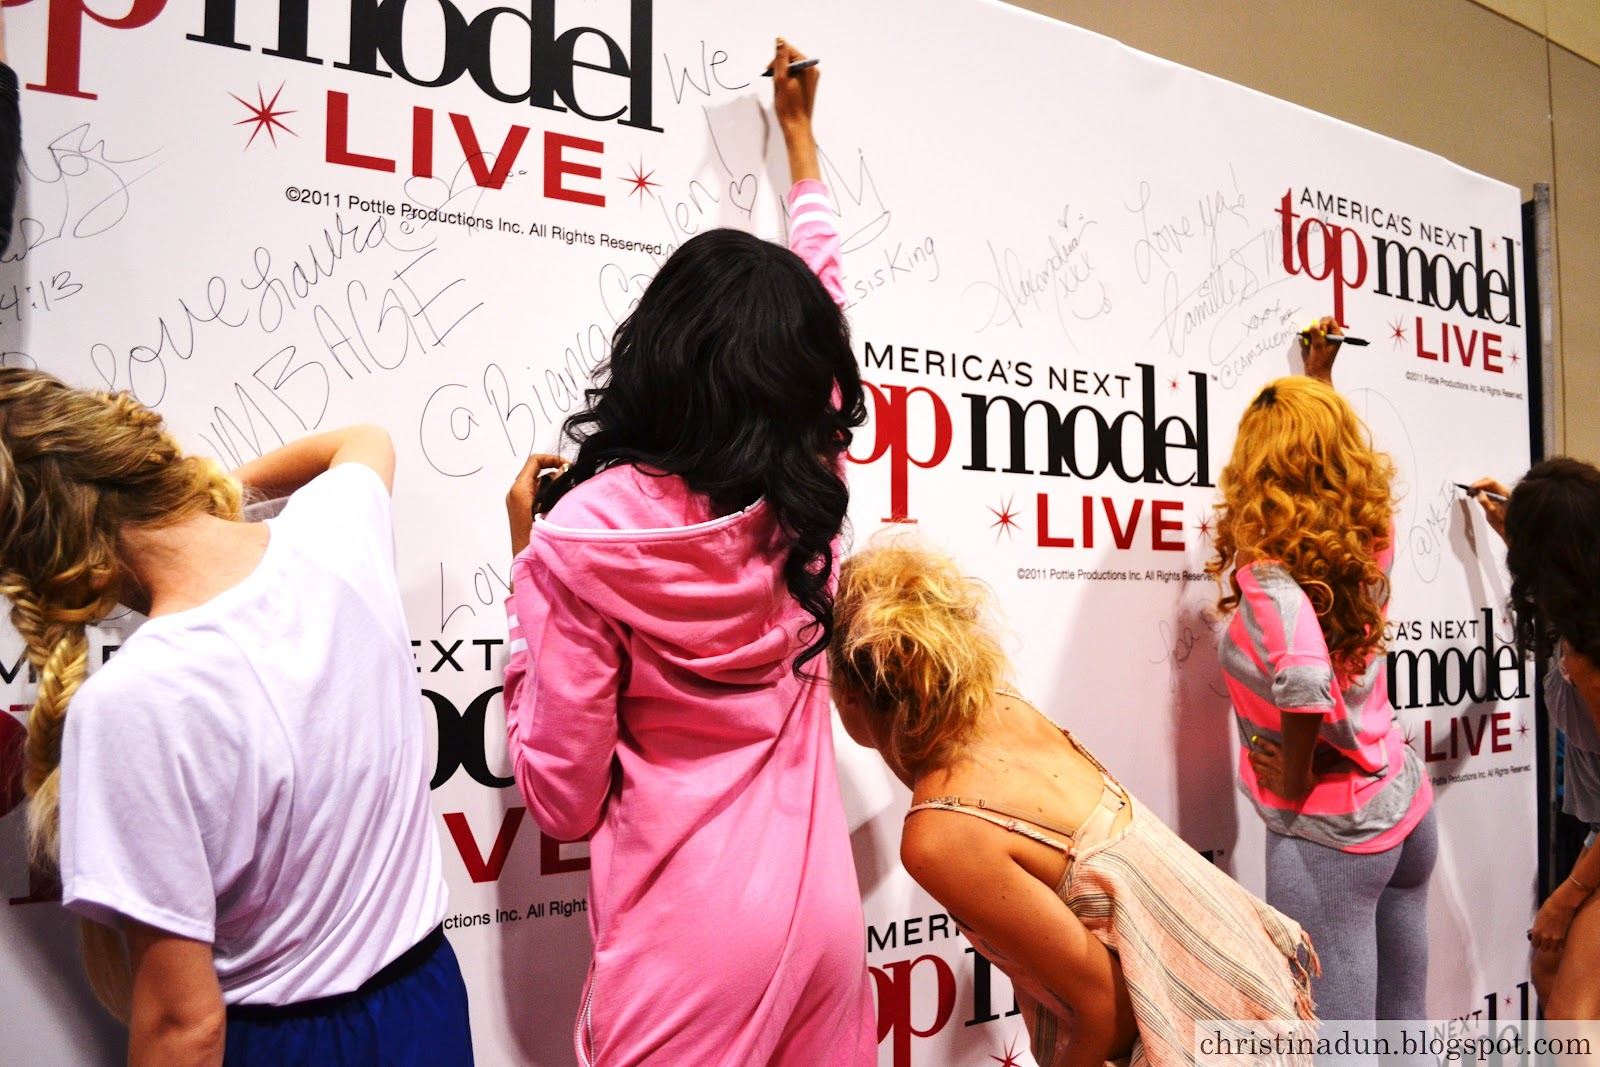 Signing The Antm Wall!